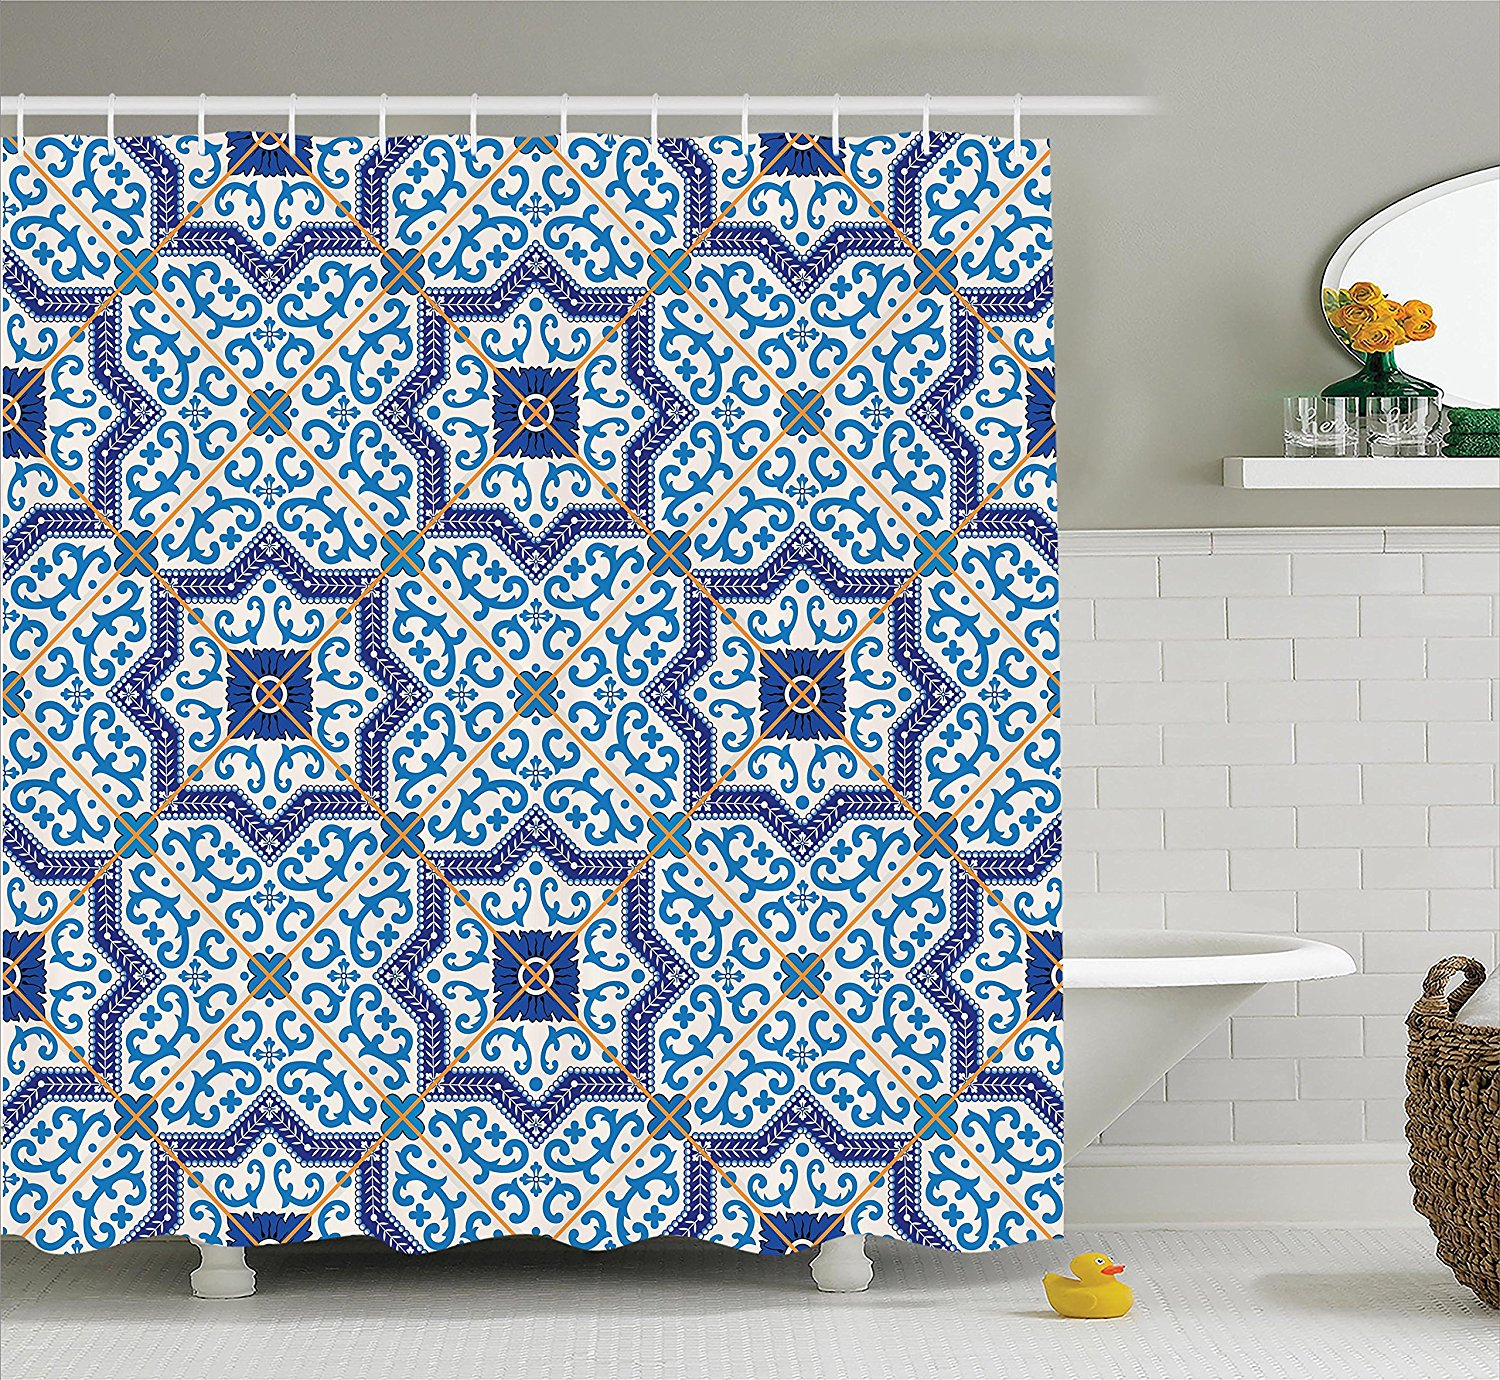 Ambesonne Moroccan Decor Collection, Moroccan Portuguese Style Classic Tiles Ornaments Islamic Historical Buildings Art, Polyester Fabric Bathroom Shower Curtain Set with Hooks, Blue White